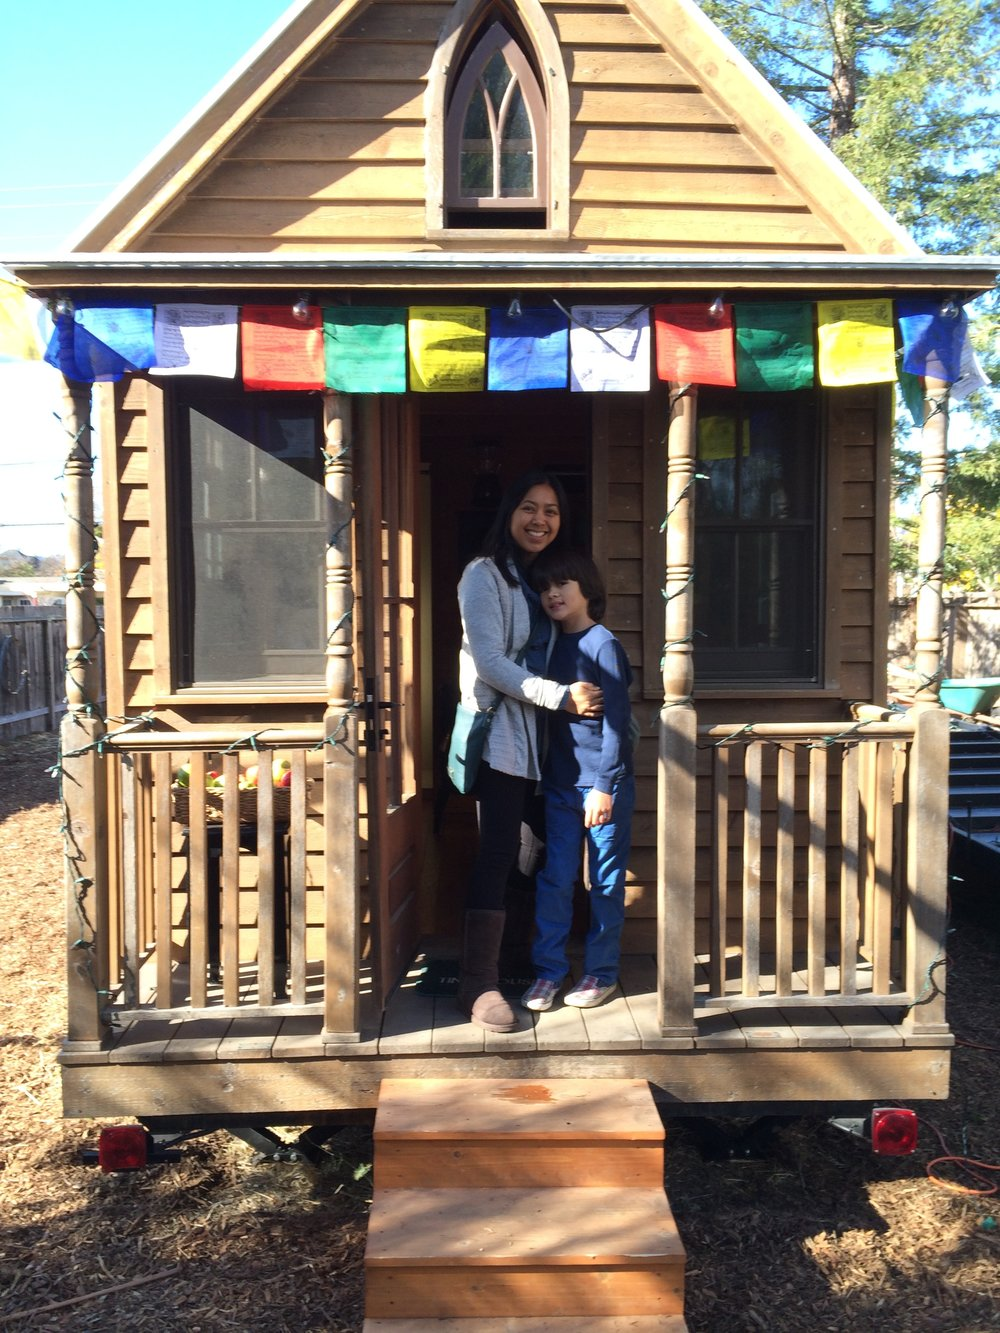 Visiting the first tiny house built in the US, which (at the time) was sitting in a backyard in Sonoma, California (the house has since moved to Colorado).